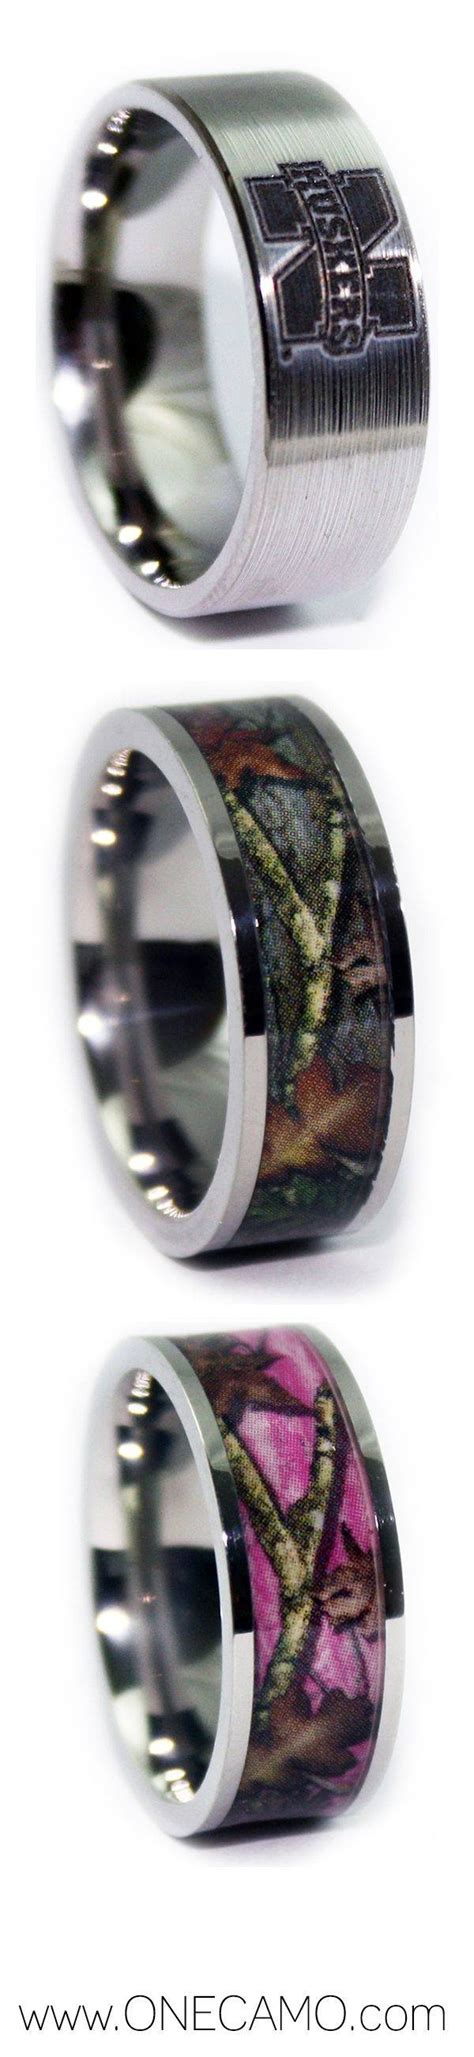 15 collection of wedding bands for electrician